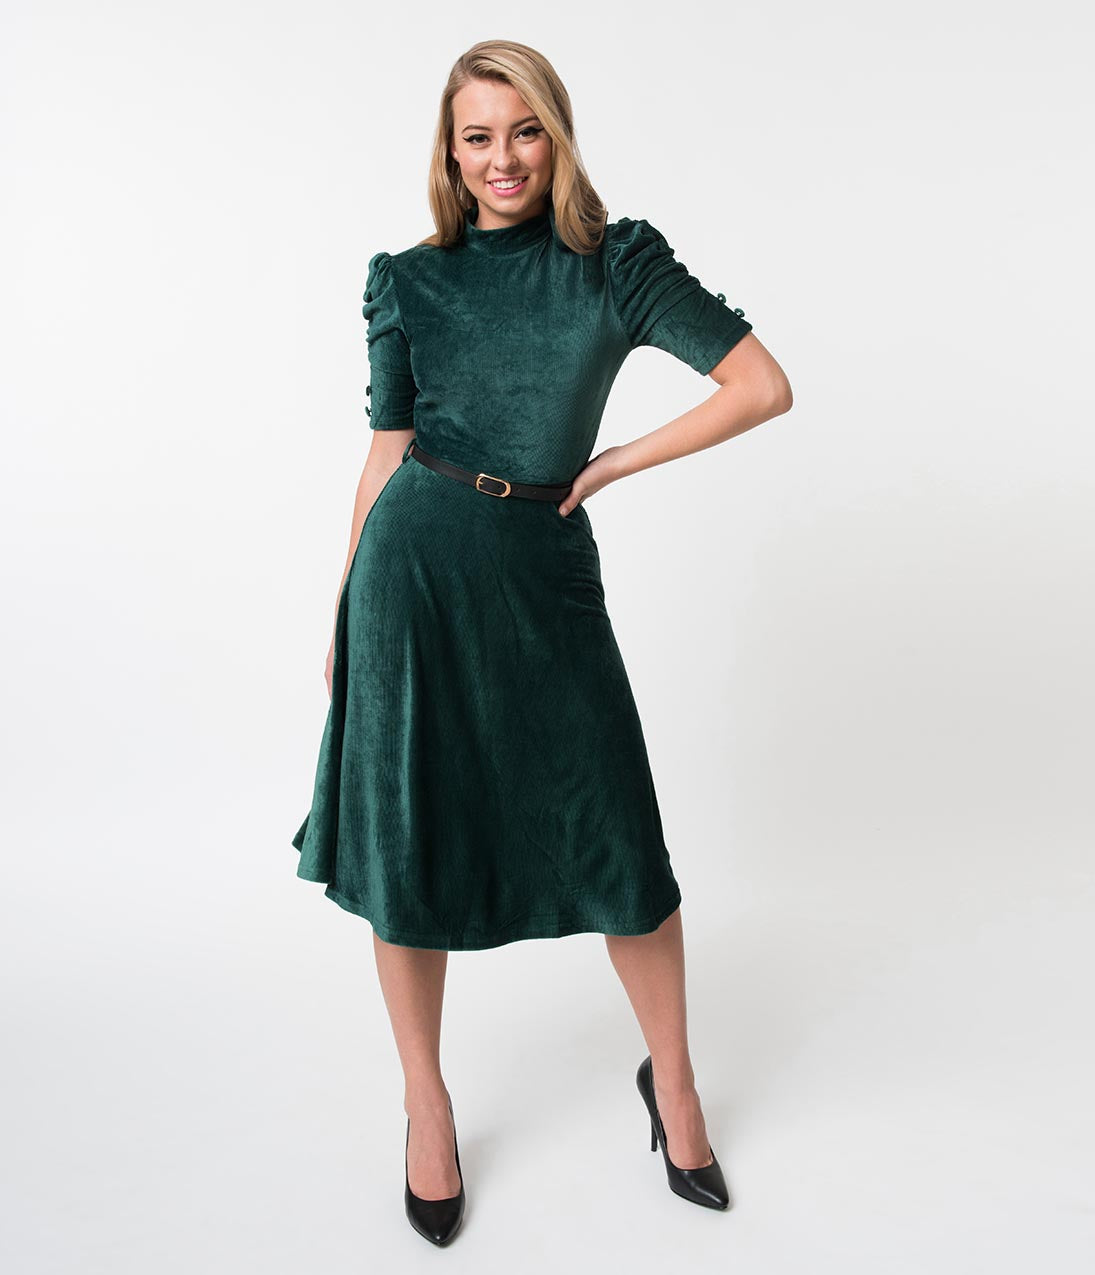 1930s Dresses | 30s Art Deco Dress Voodoo Vixen Emerald Corduroy Velvet High Collar Penelope Dress $48.00 AT vintagedancer.com